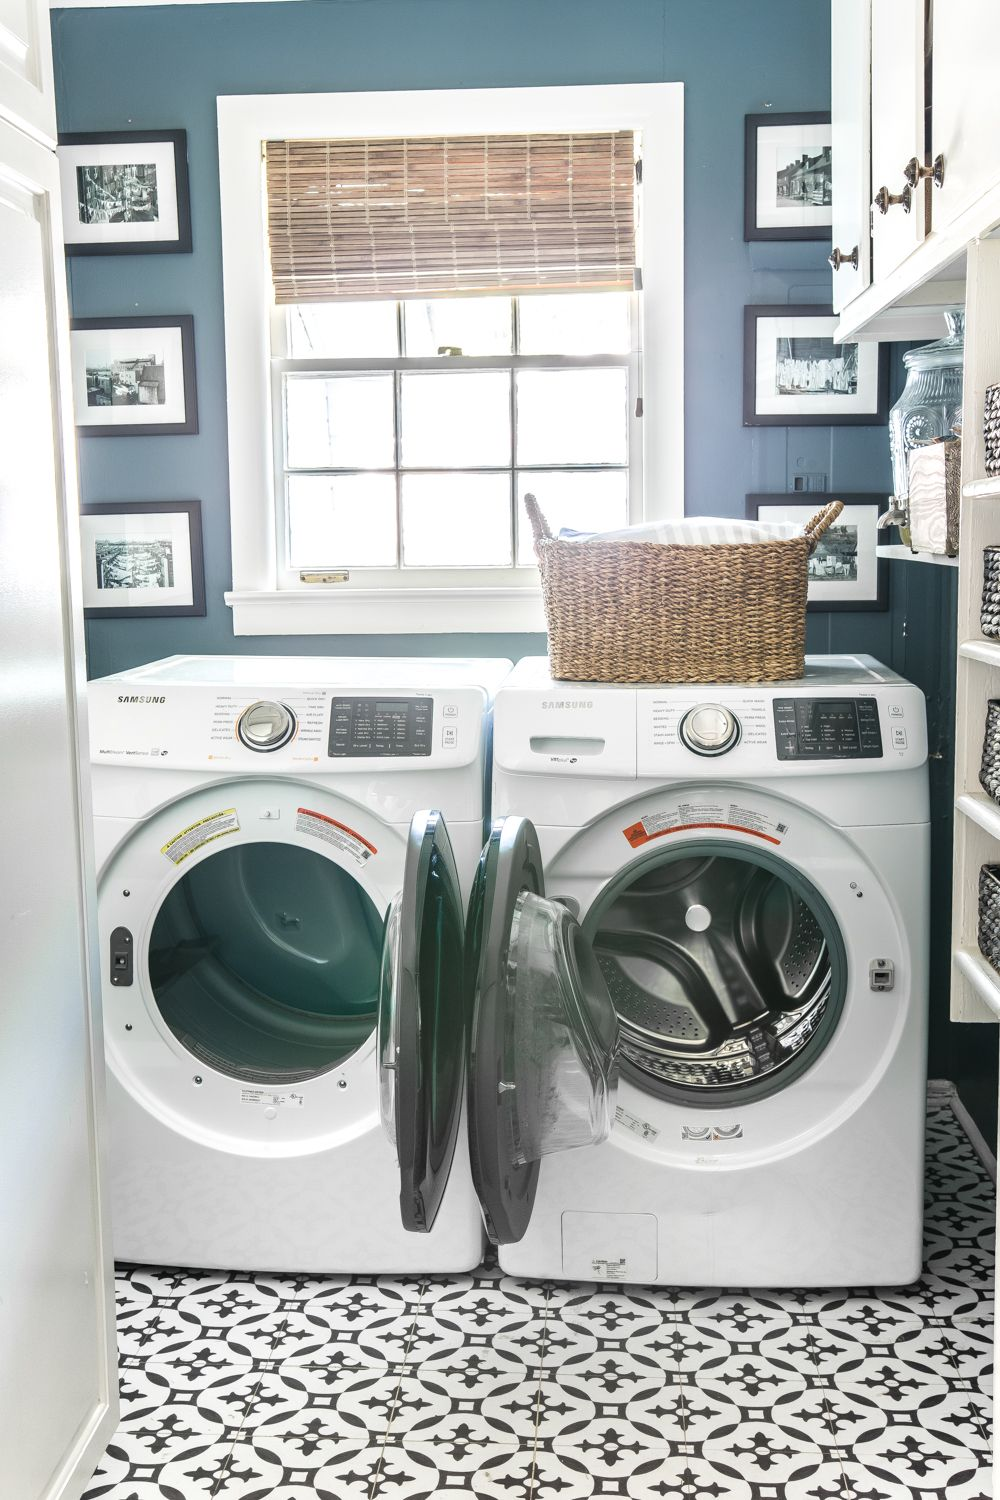 How To Cross Washer And Dryer Connectors Washer And Dryer